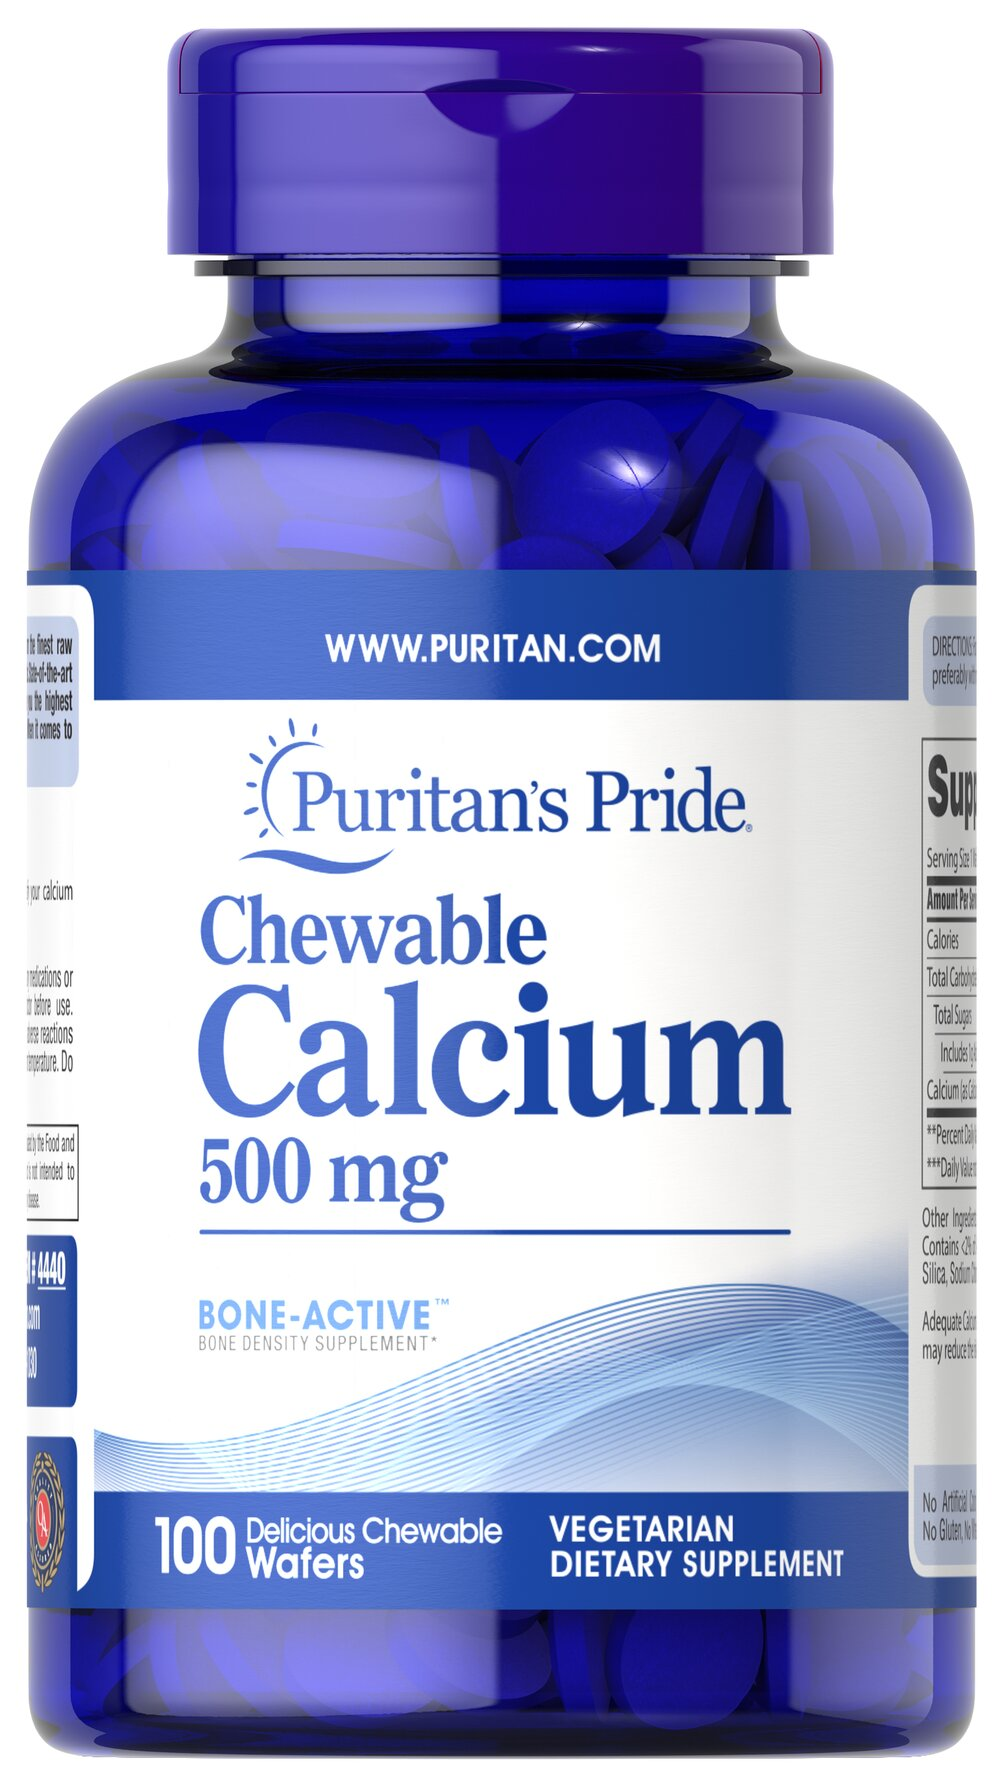 Chewable Calcium 500 mg  100 Chewables 500 mg $11.99